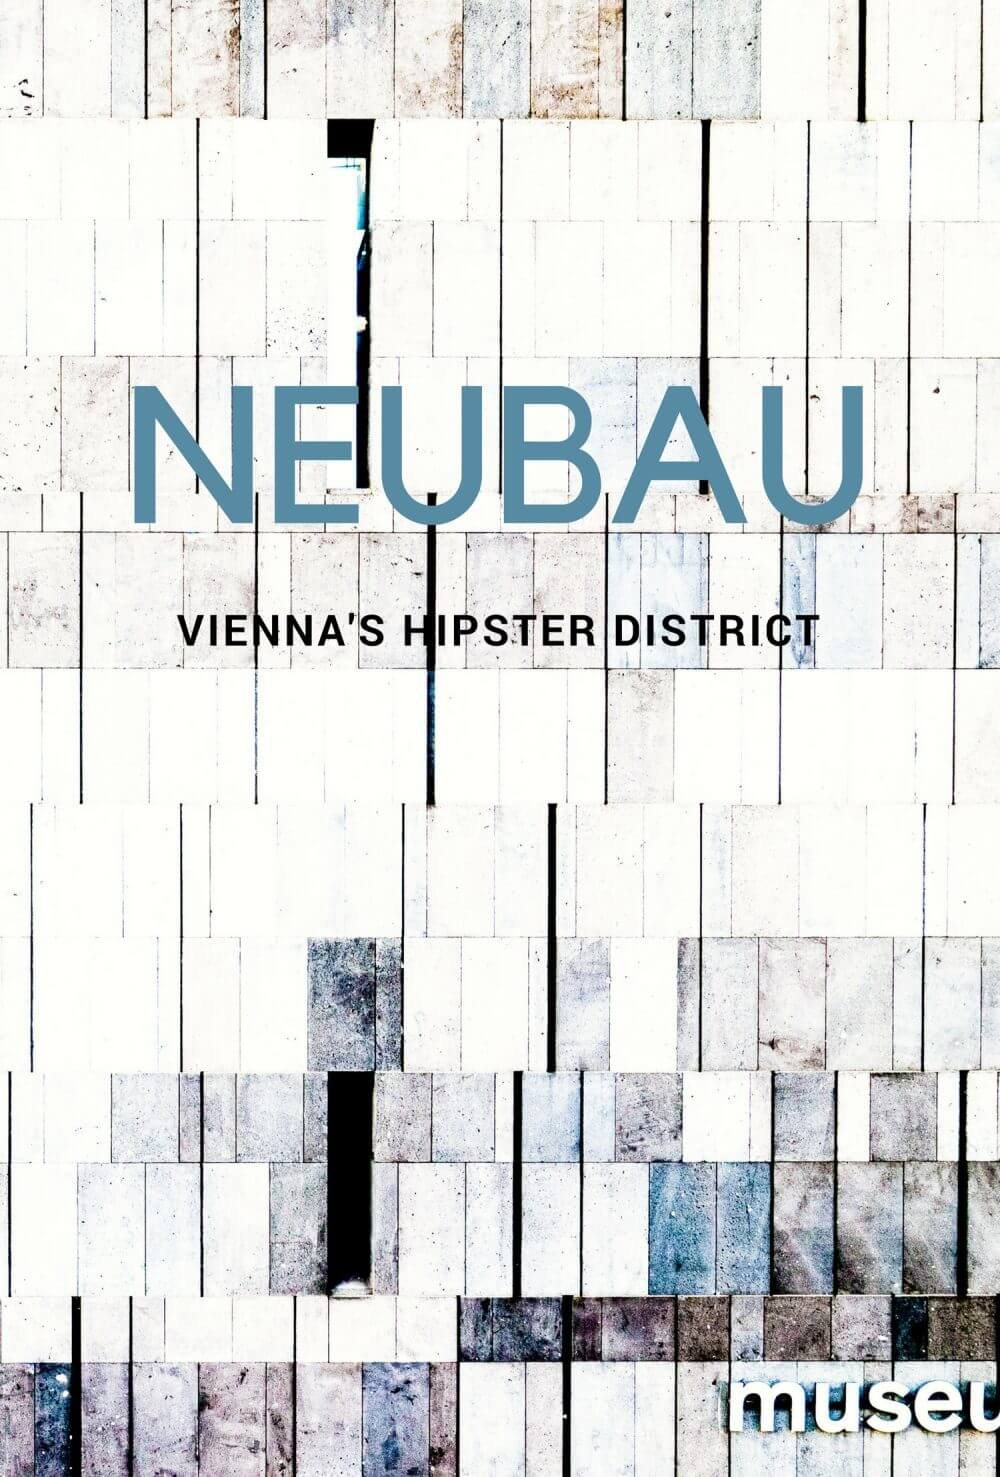 3 Odd Things in Neubau: Vienna's Hipster District